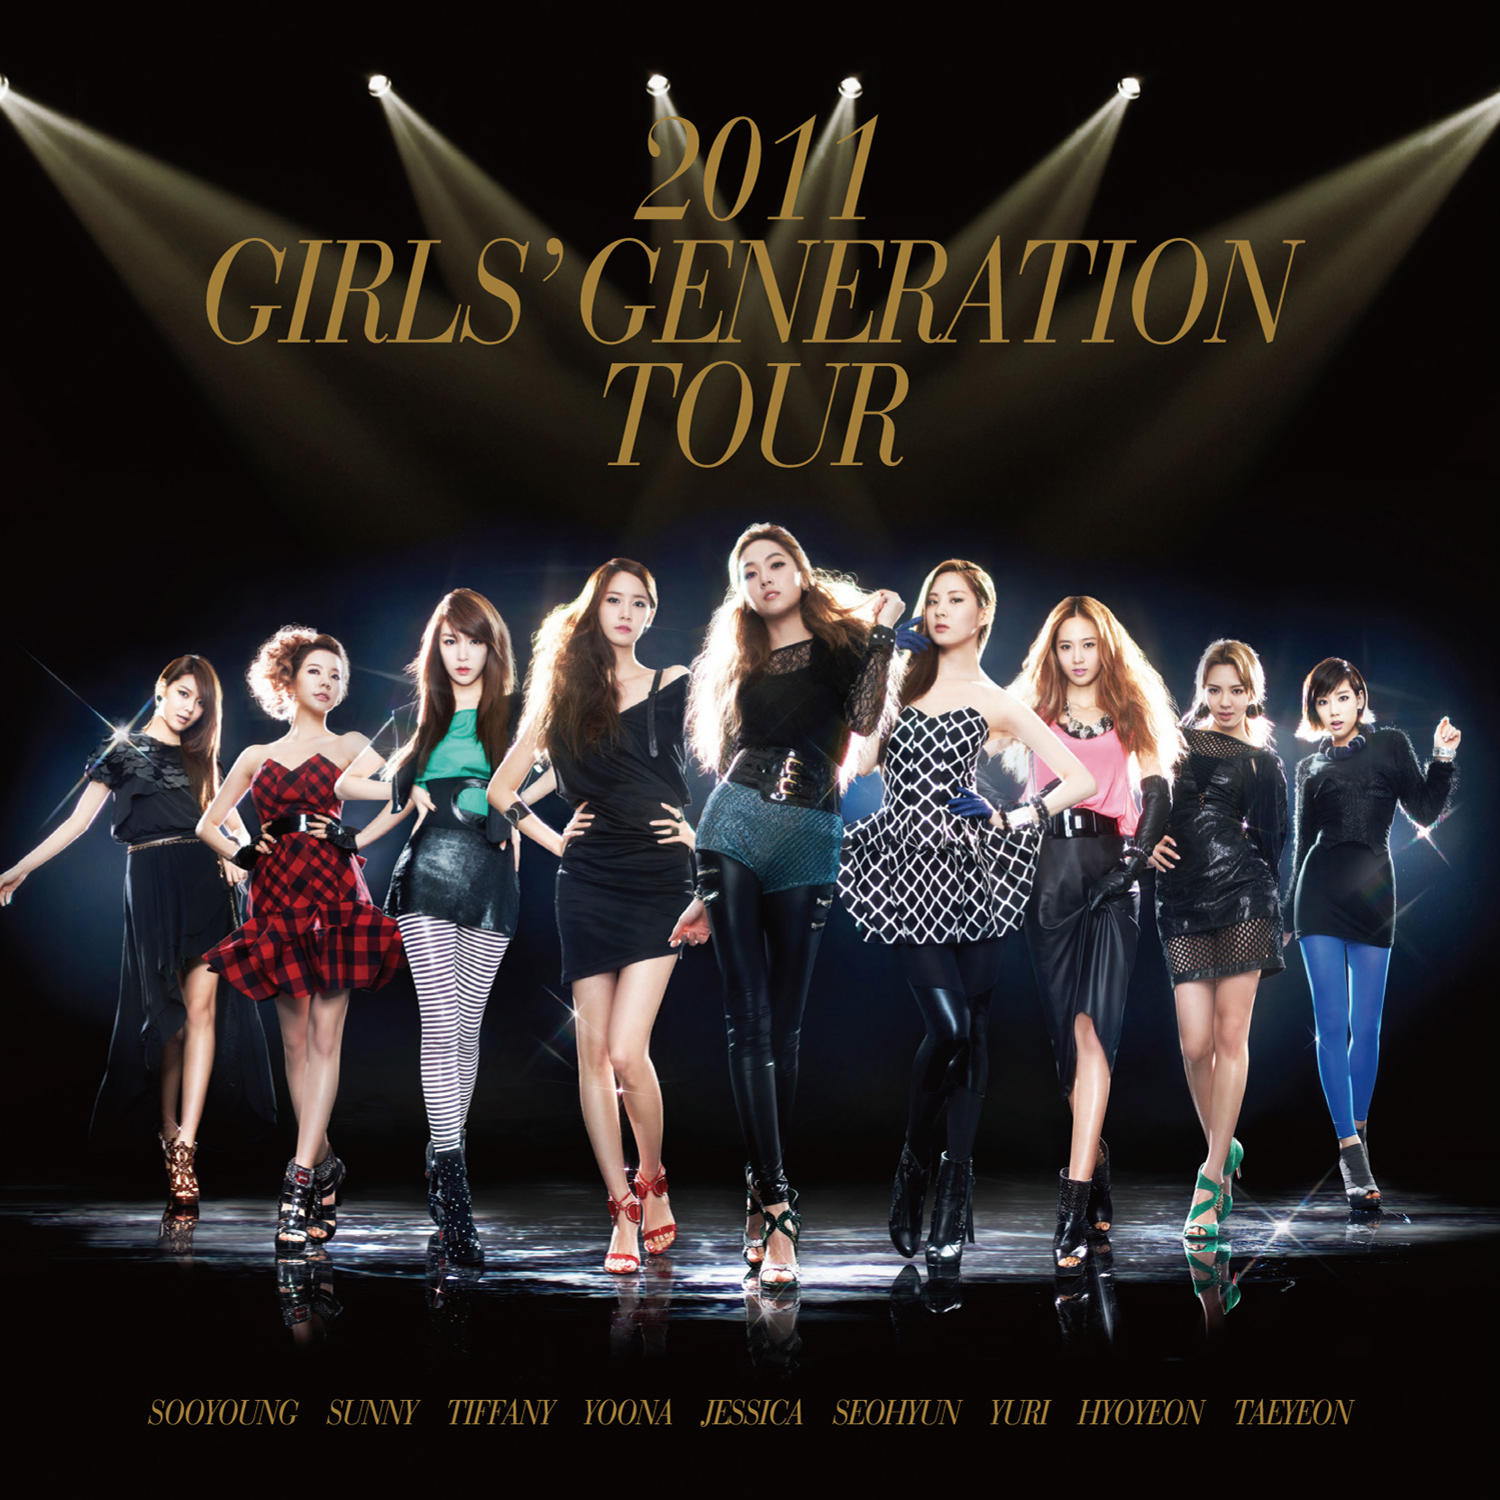 2011 Girls' Generation Tour (album)